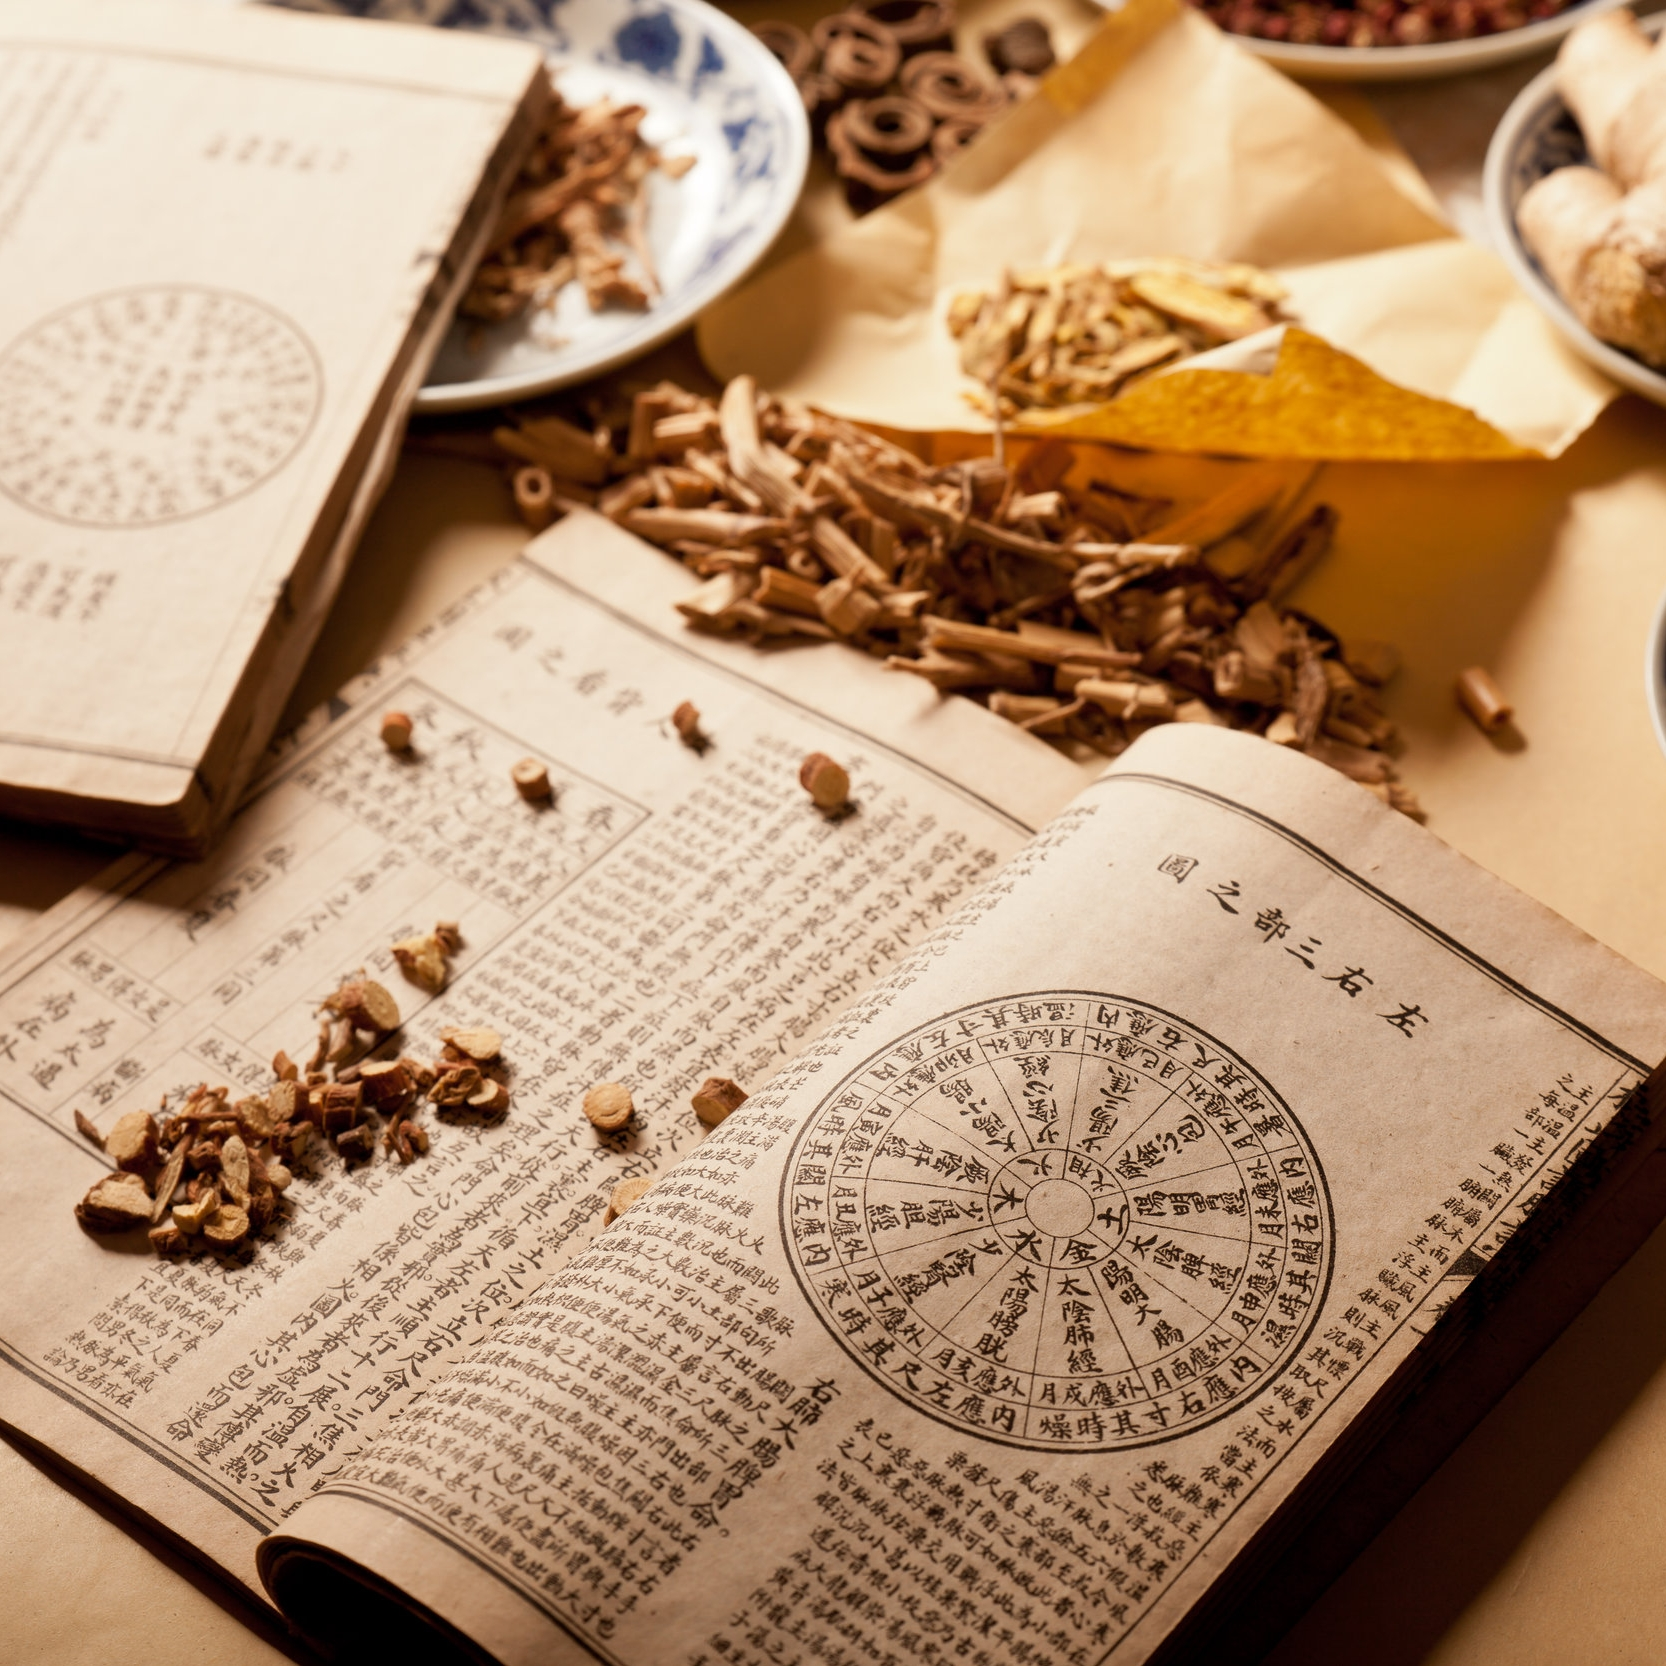 Chinese herbs scattered across a traditional Chinese medicine book